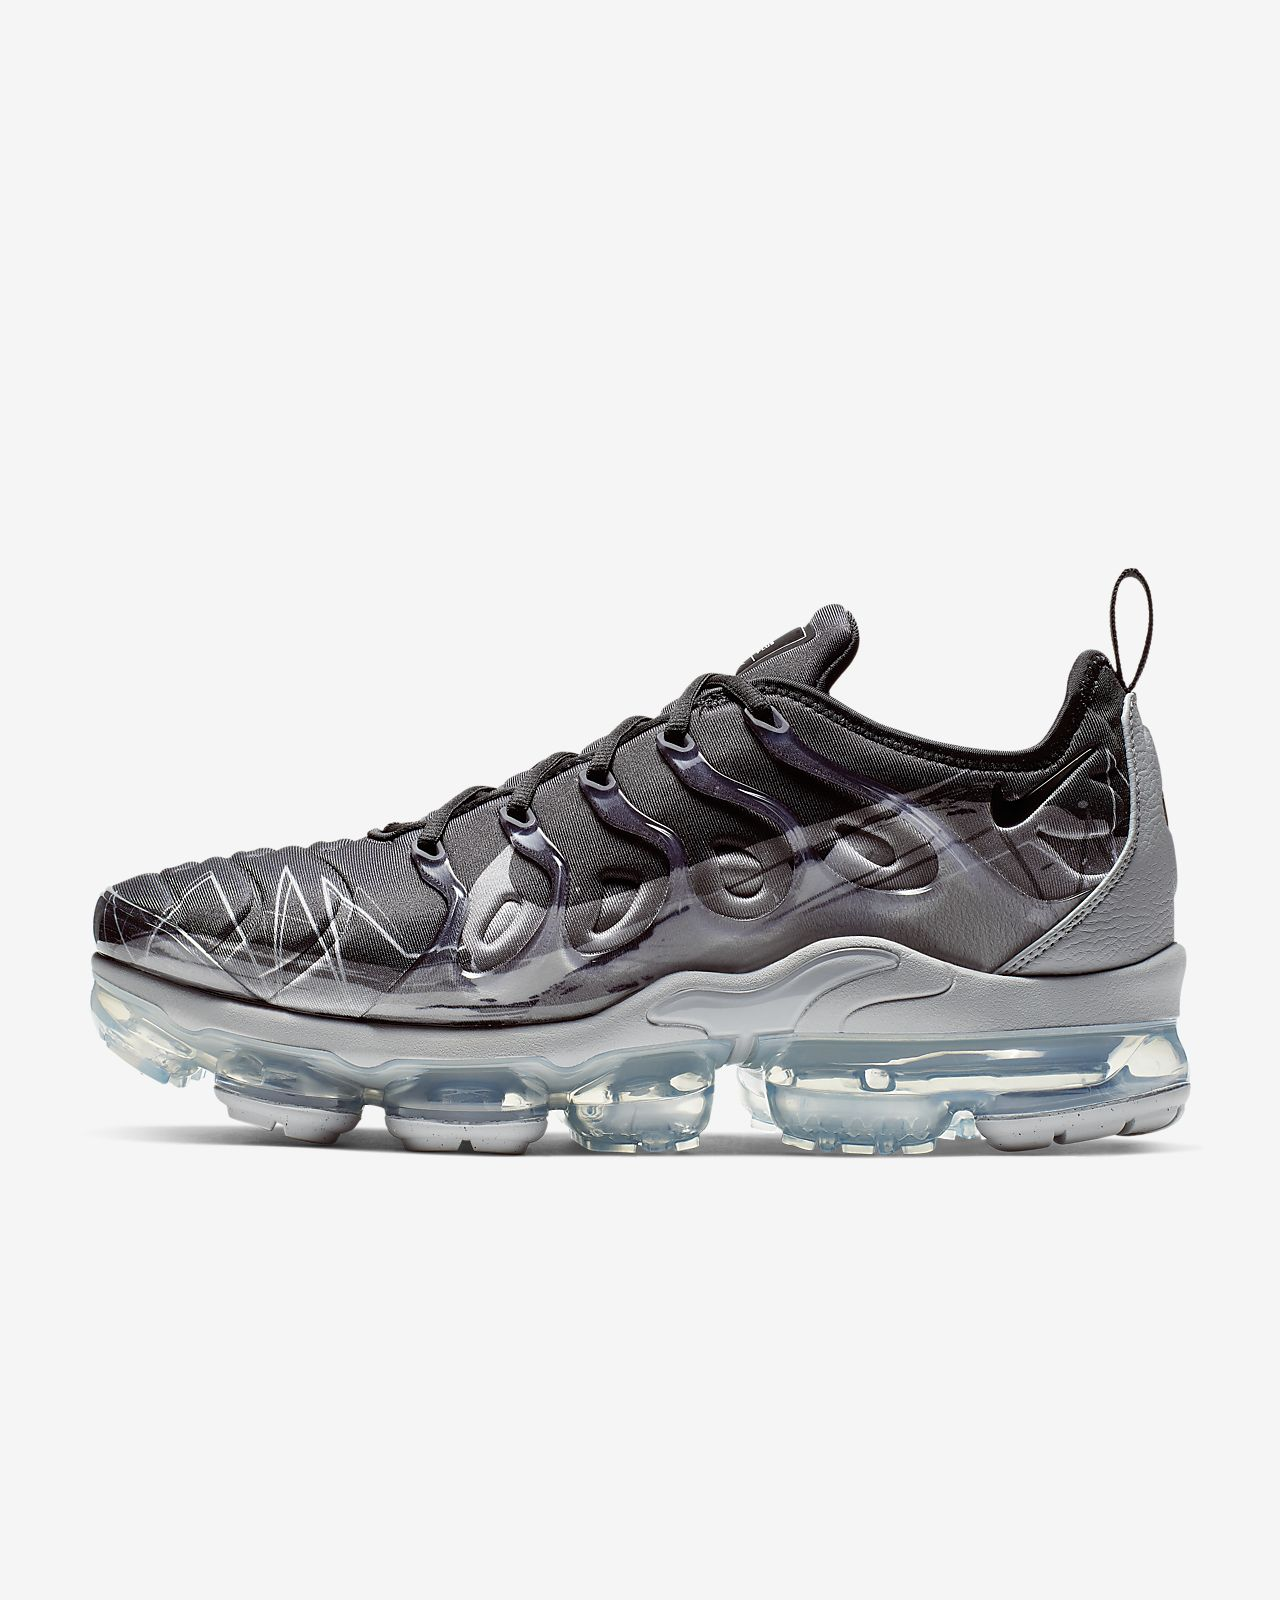 best loved 70234 2cef9 2 549 Dh. Low Resolution Chaussure Nike Air VaporMax Plus pour Homme  Chaussure Nike Air VaporMax Plus pour Homme